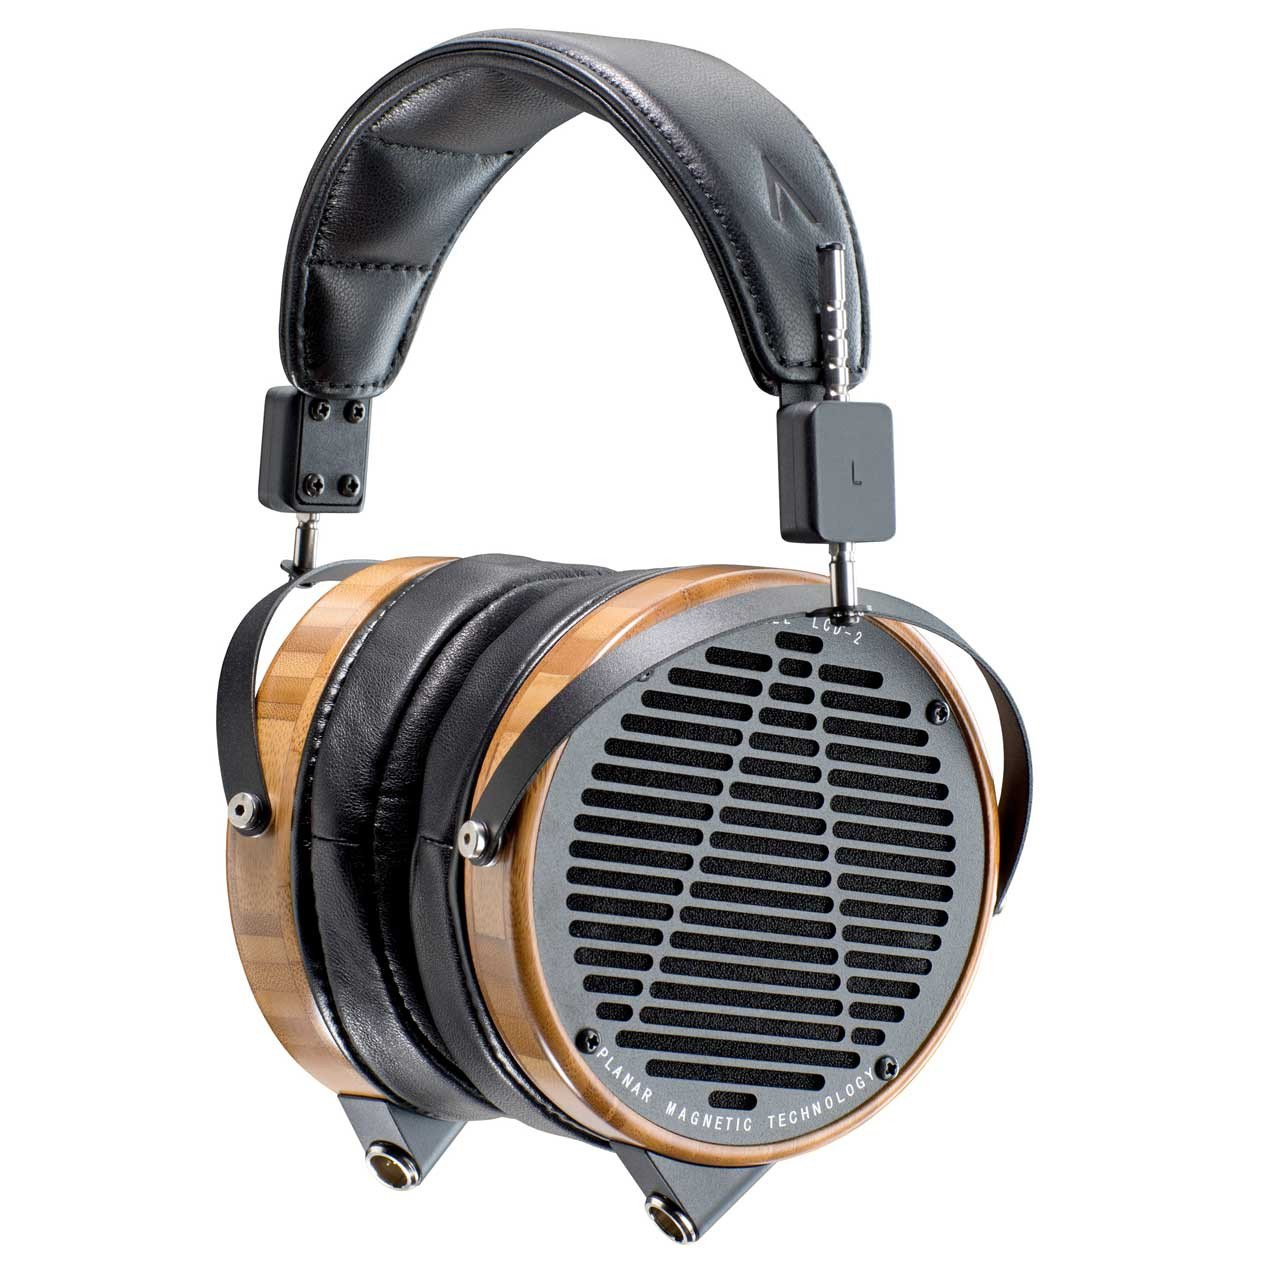 Open Headphones - Audeze LCD-2 Open-Back Headphones